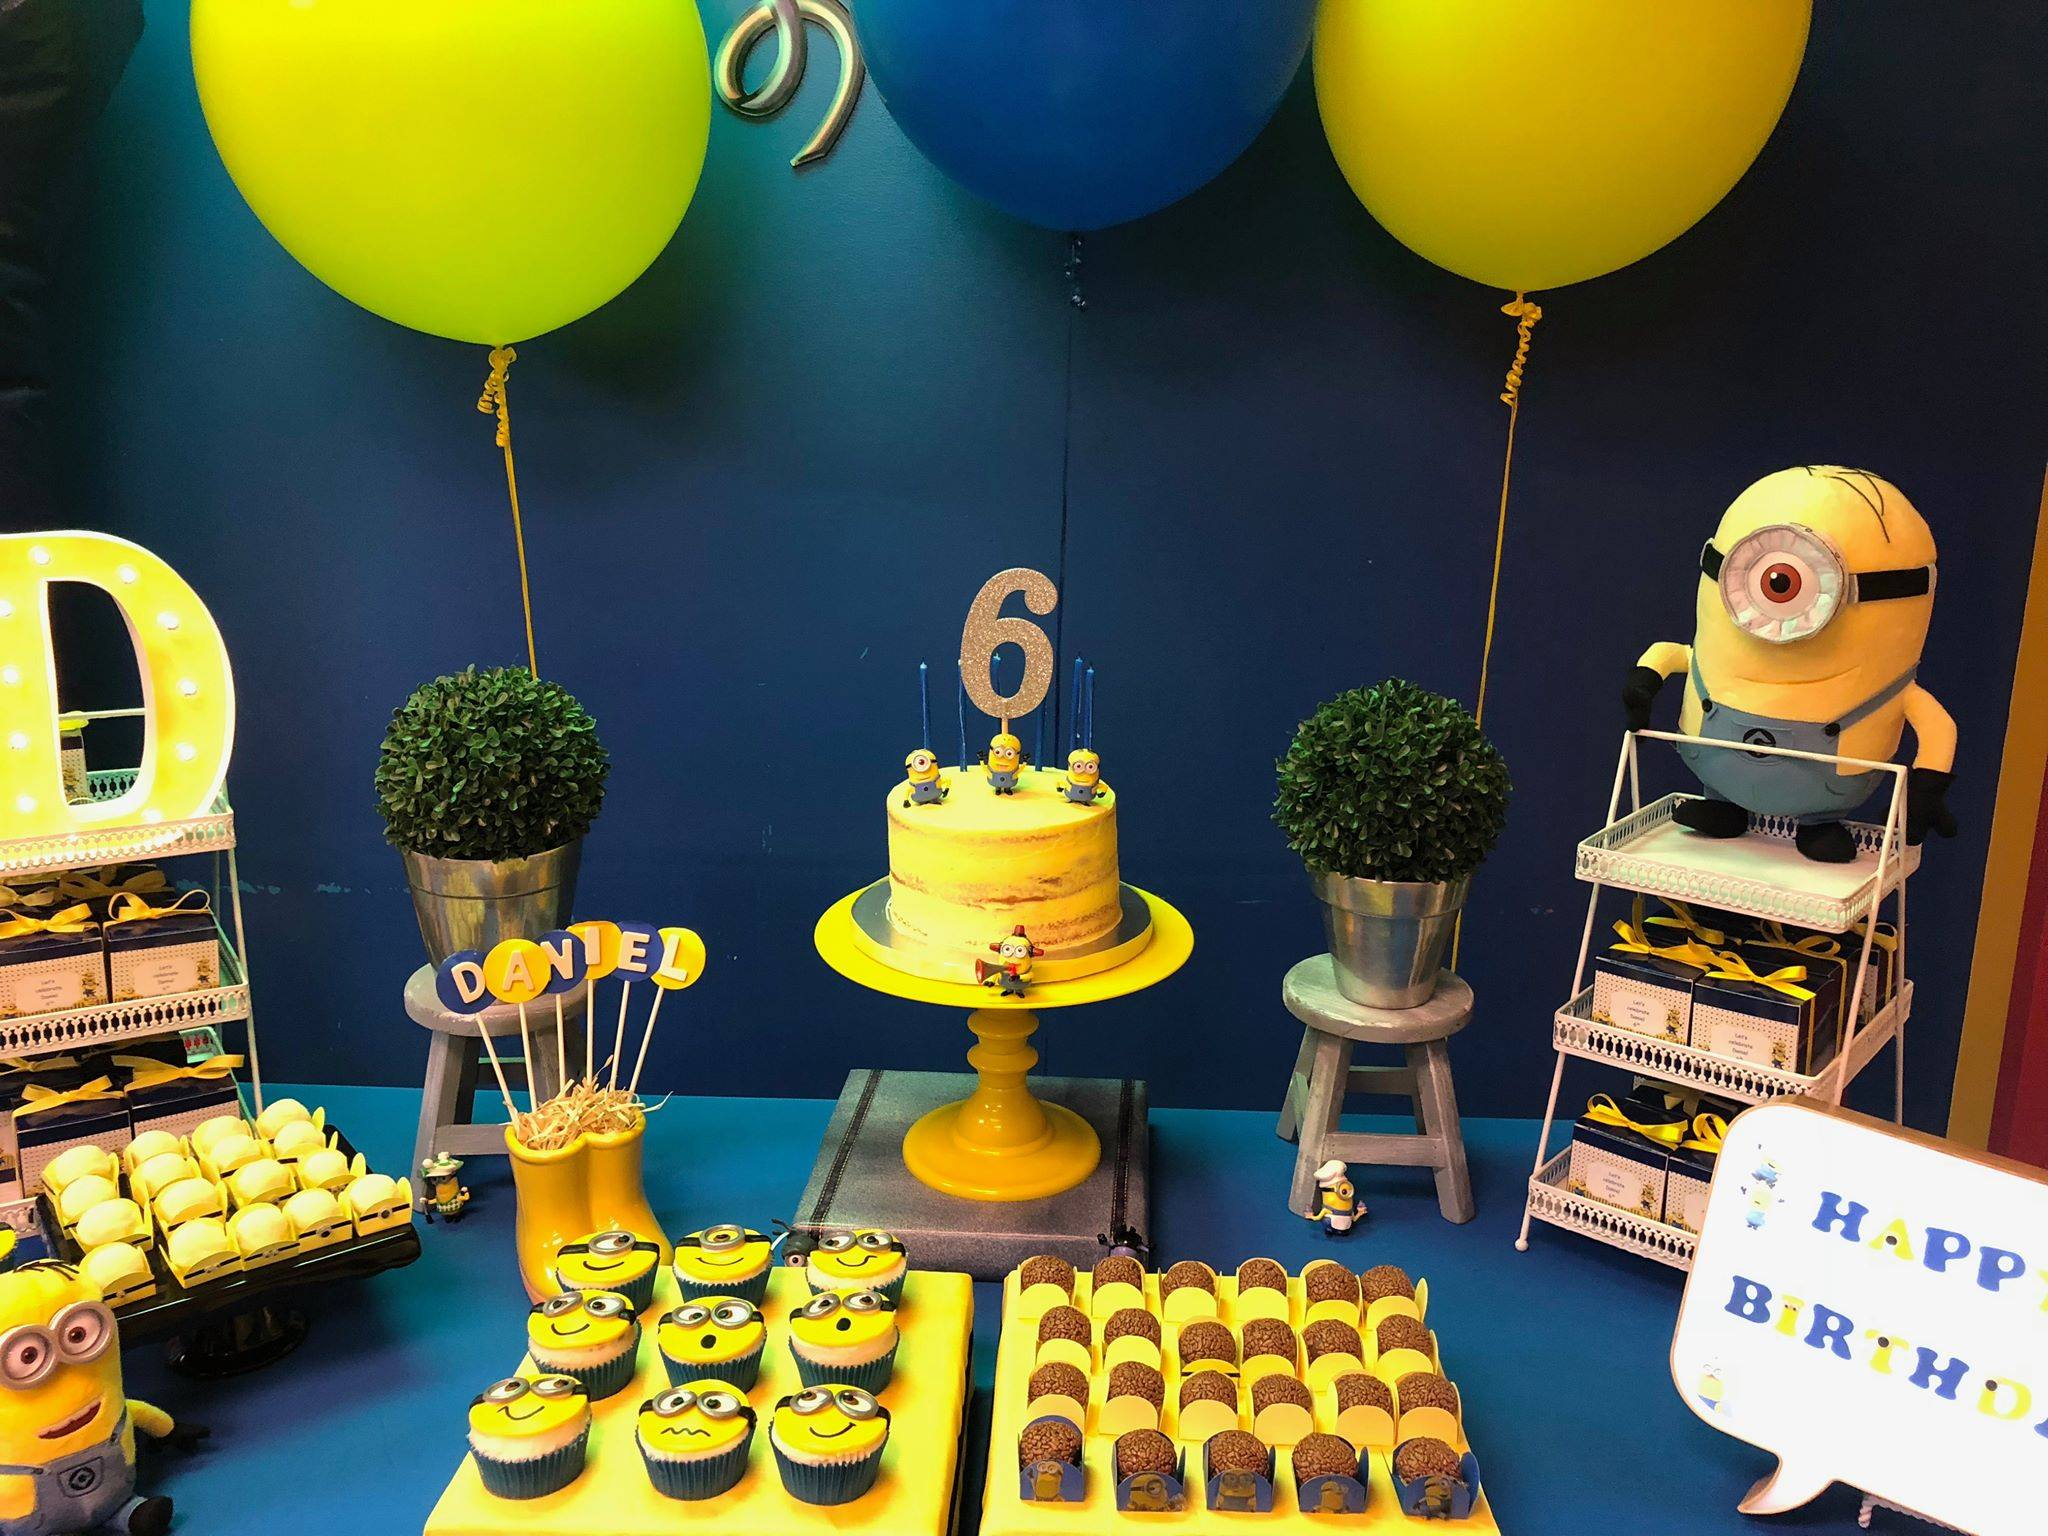 Minions - 6 years old party